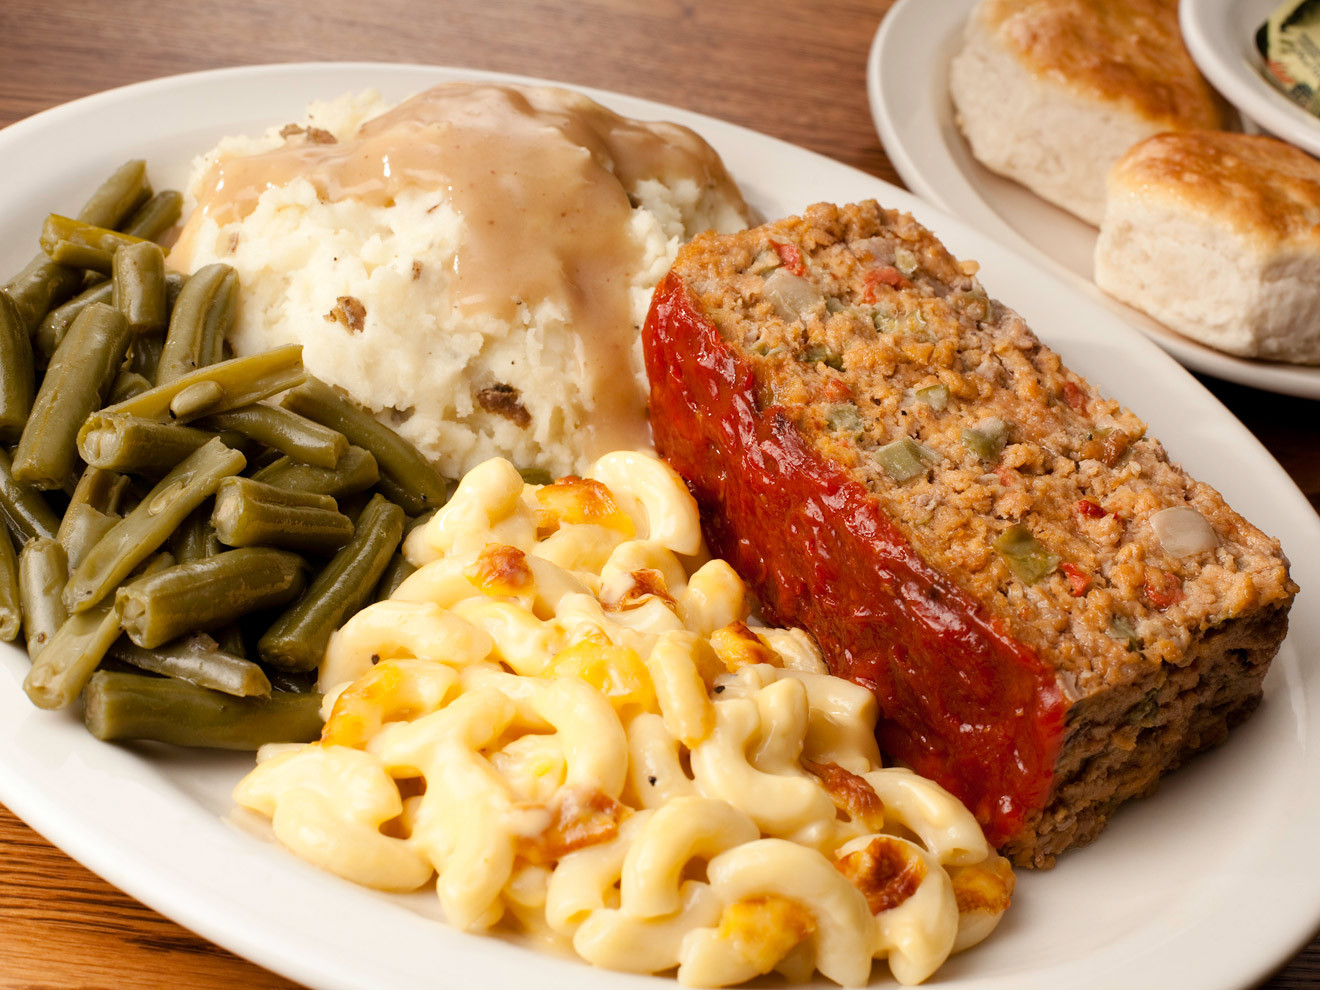 Sides For Dinner  Cracker Barrel Serves Down Home Country Meals You'll Love